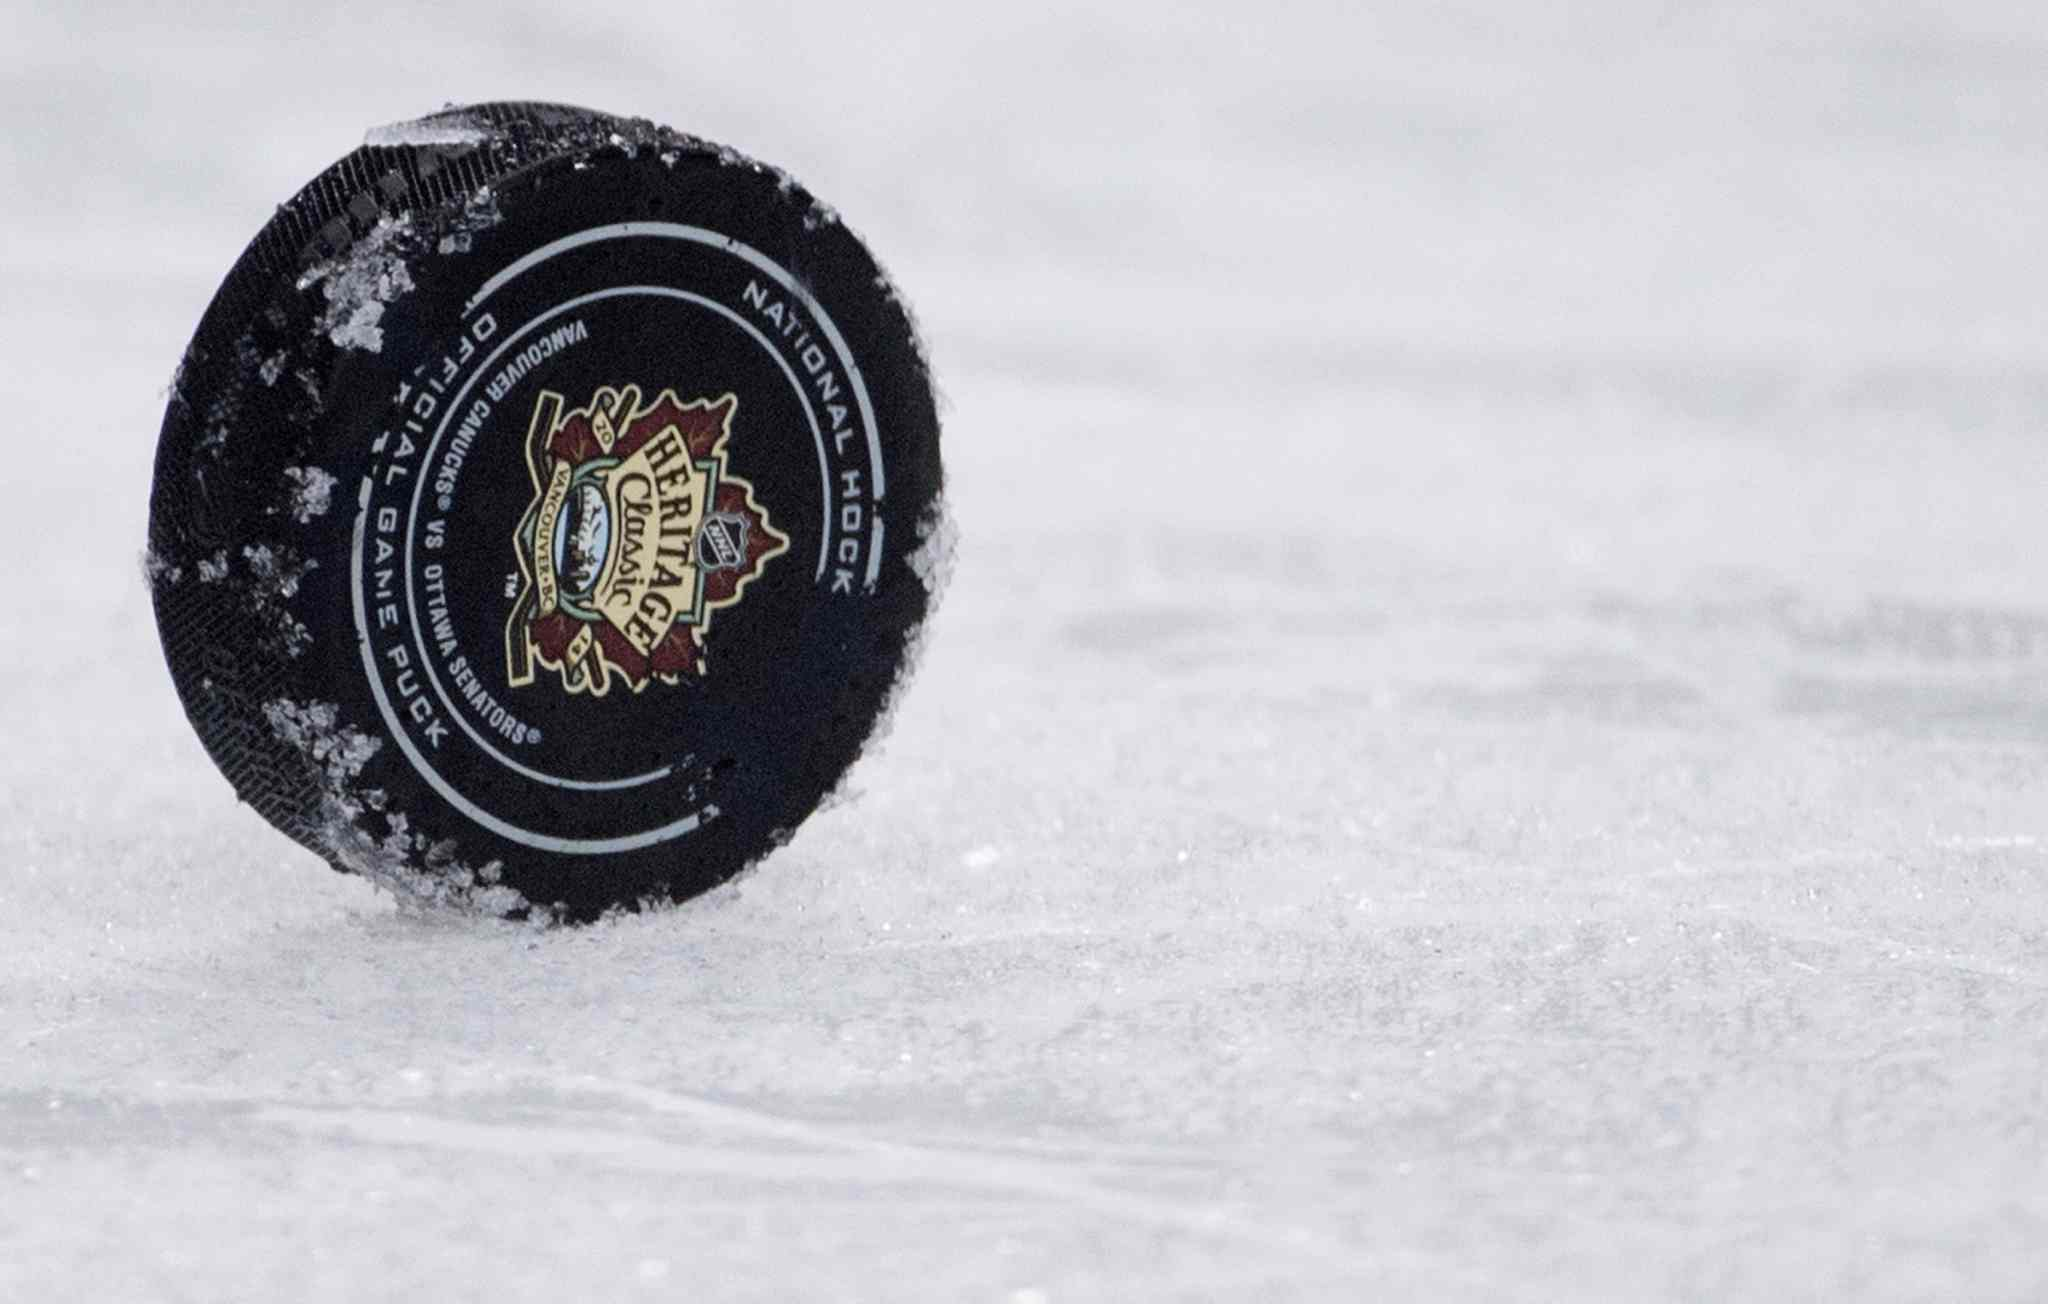 The puck is seen on the ice during the third period of the Heritage Classic hockey game between the Ottawa Senators and the Vancouver Canucks at BC Place in Vancouver, B.C. Sunday, March 2, 2014.